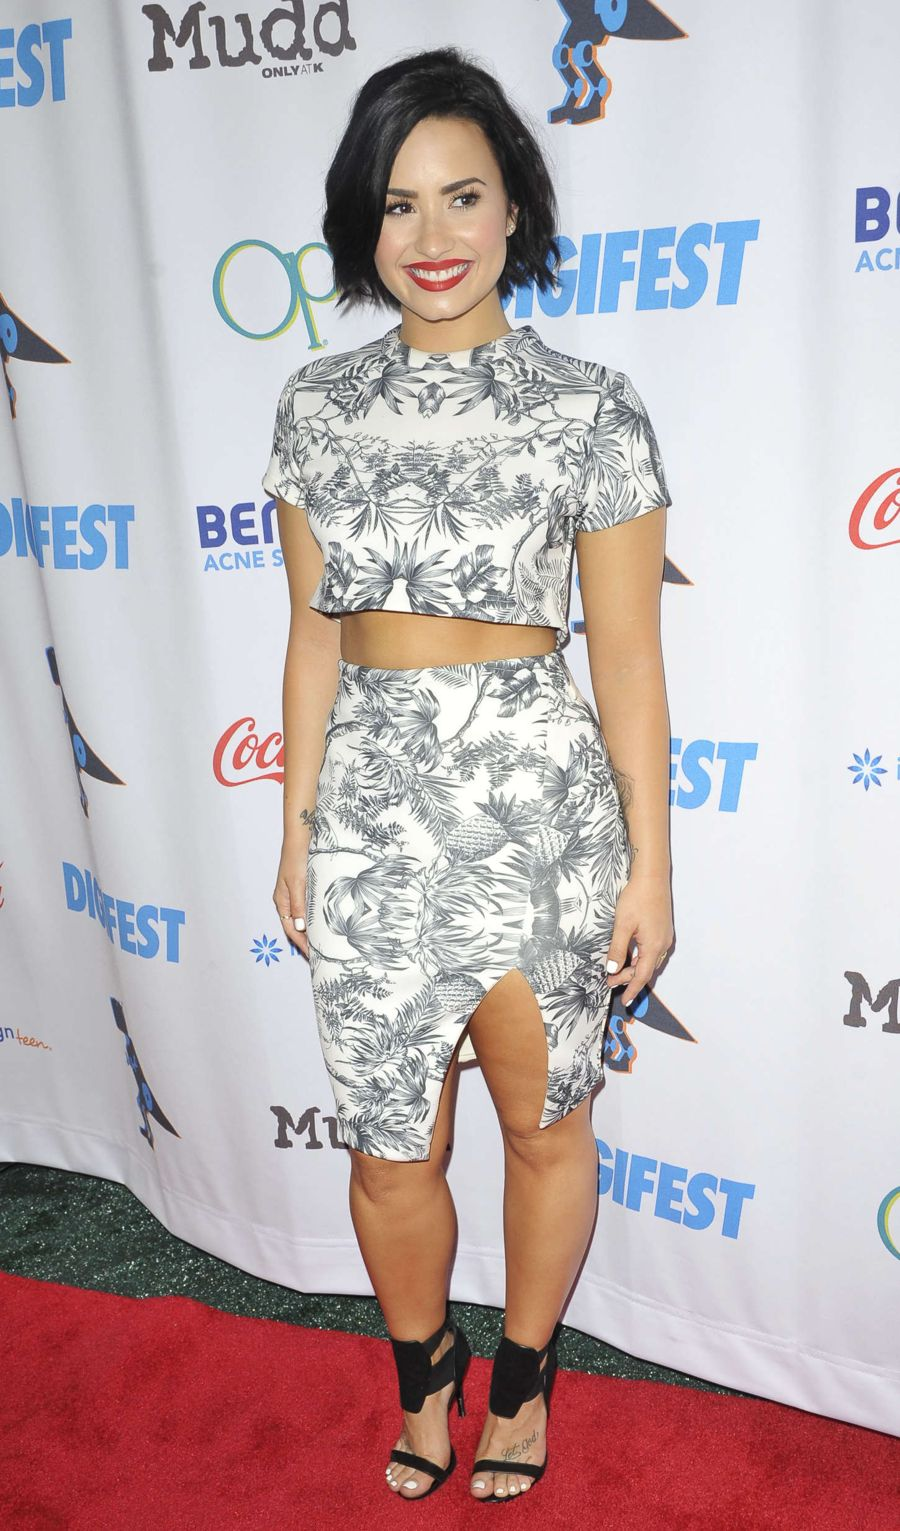 Demi Lovato - DigiFest NYC 2015 in NYC